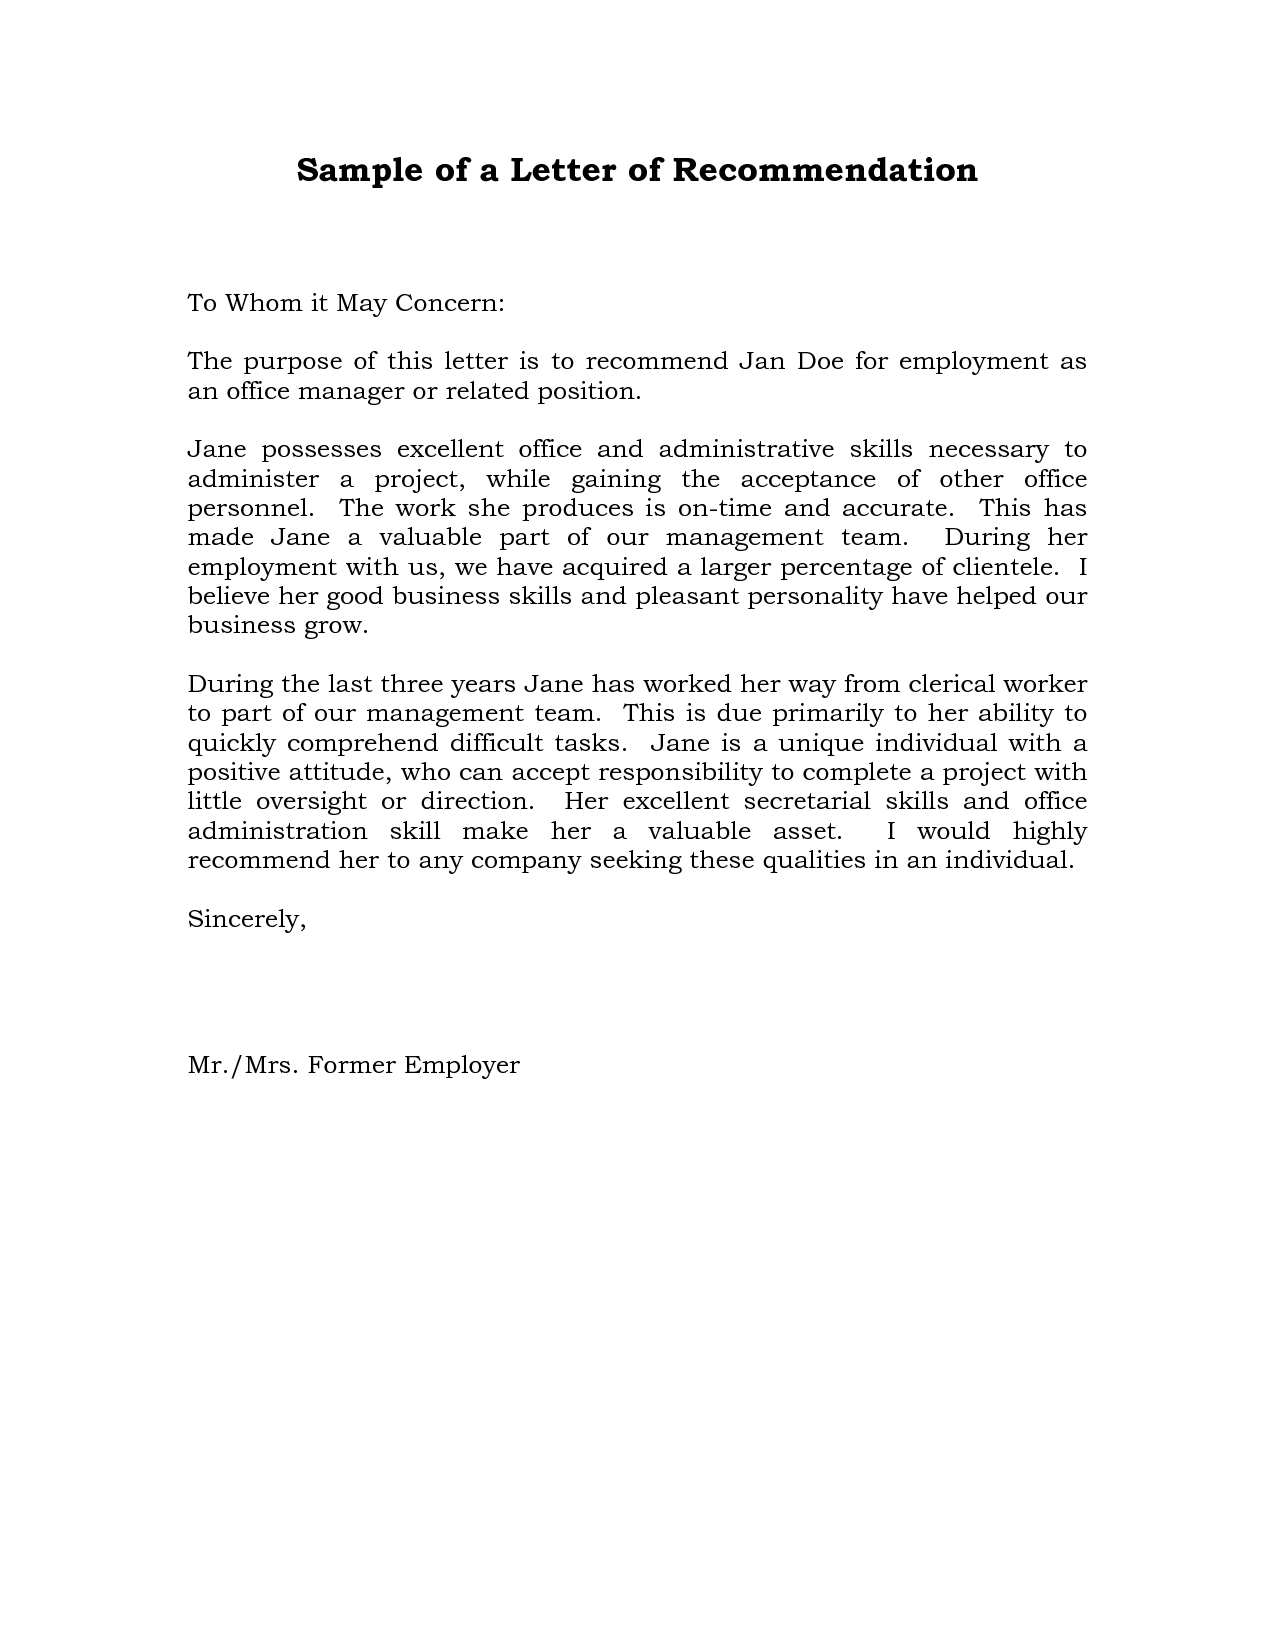 Reference Letter Of Recommendation Sample | Sample Manager Recommendation  Letters  Example Of Letter Of Recommendation